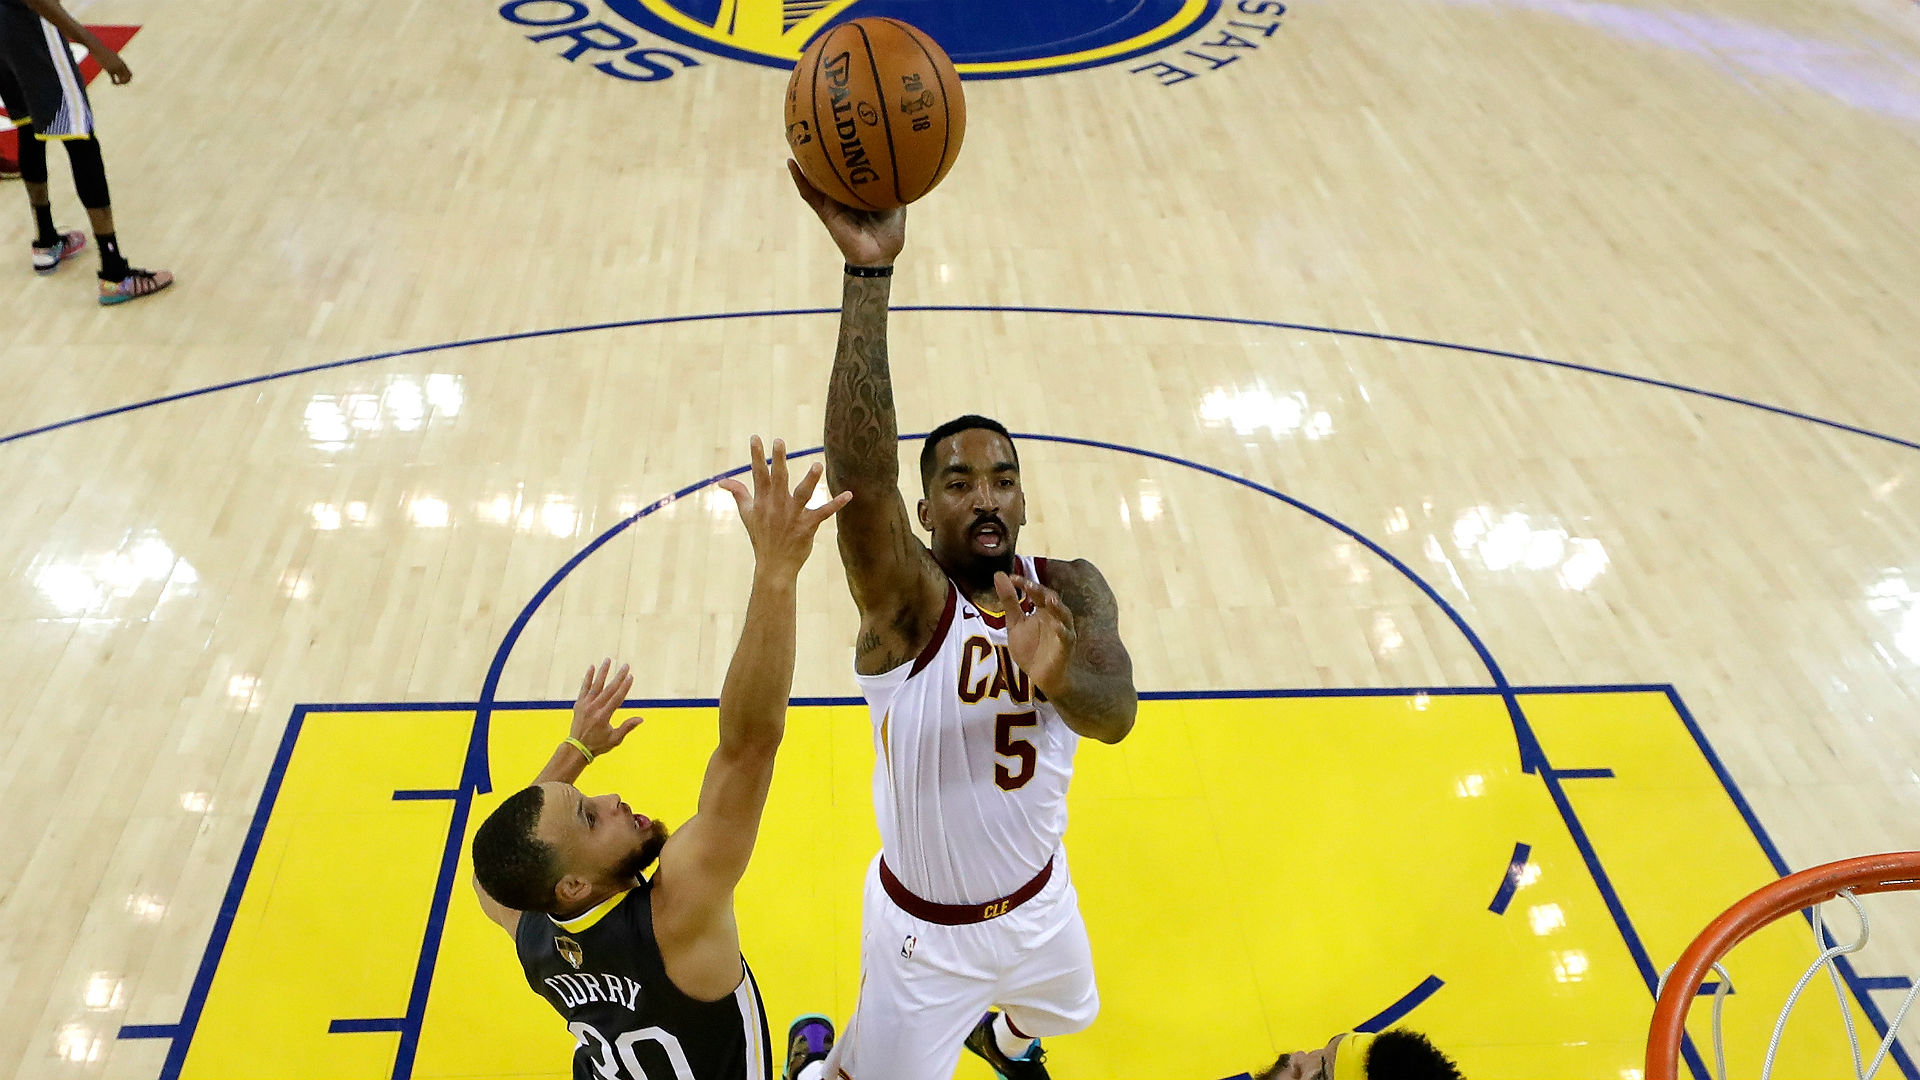 NBA Finals shifts to Cleveland, Cavs down 0-2 vs Warriors